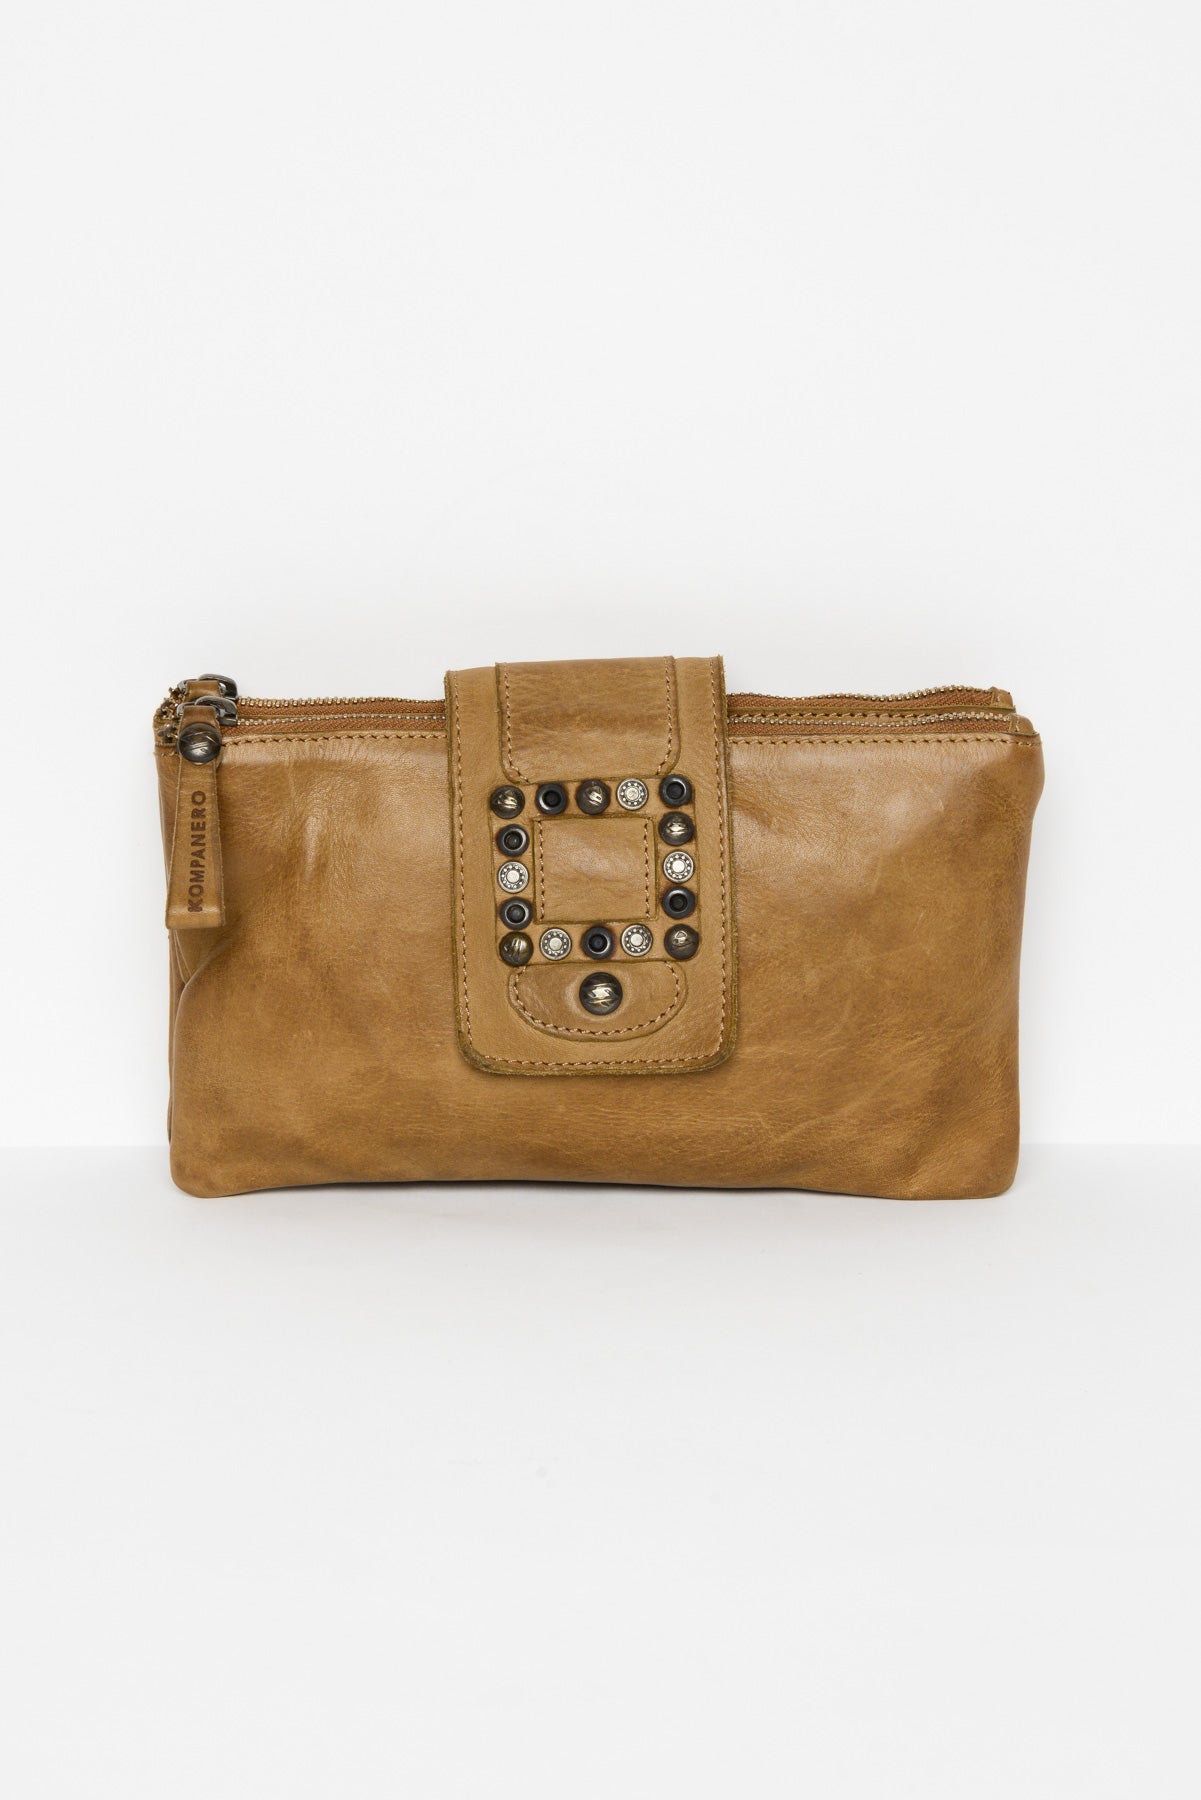 Flamina Tobacco Leather Clutch - Blue Bungalow